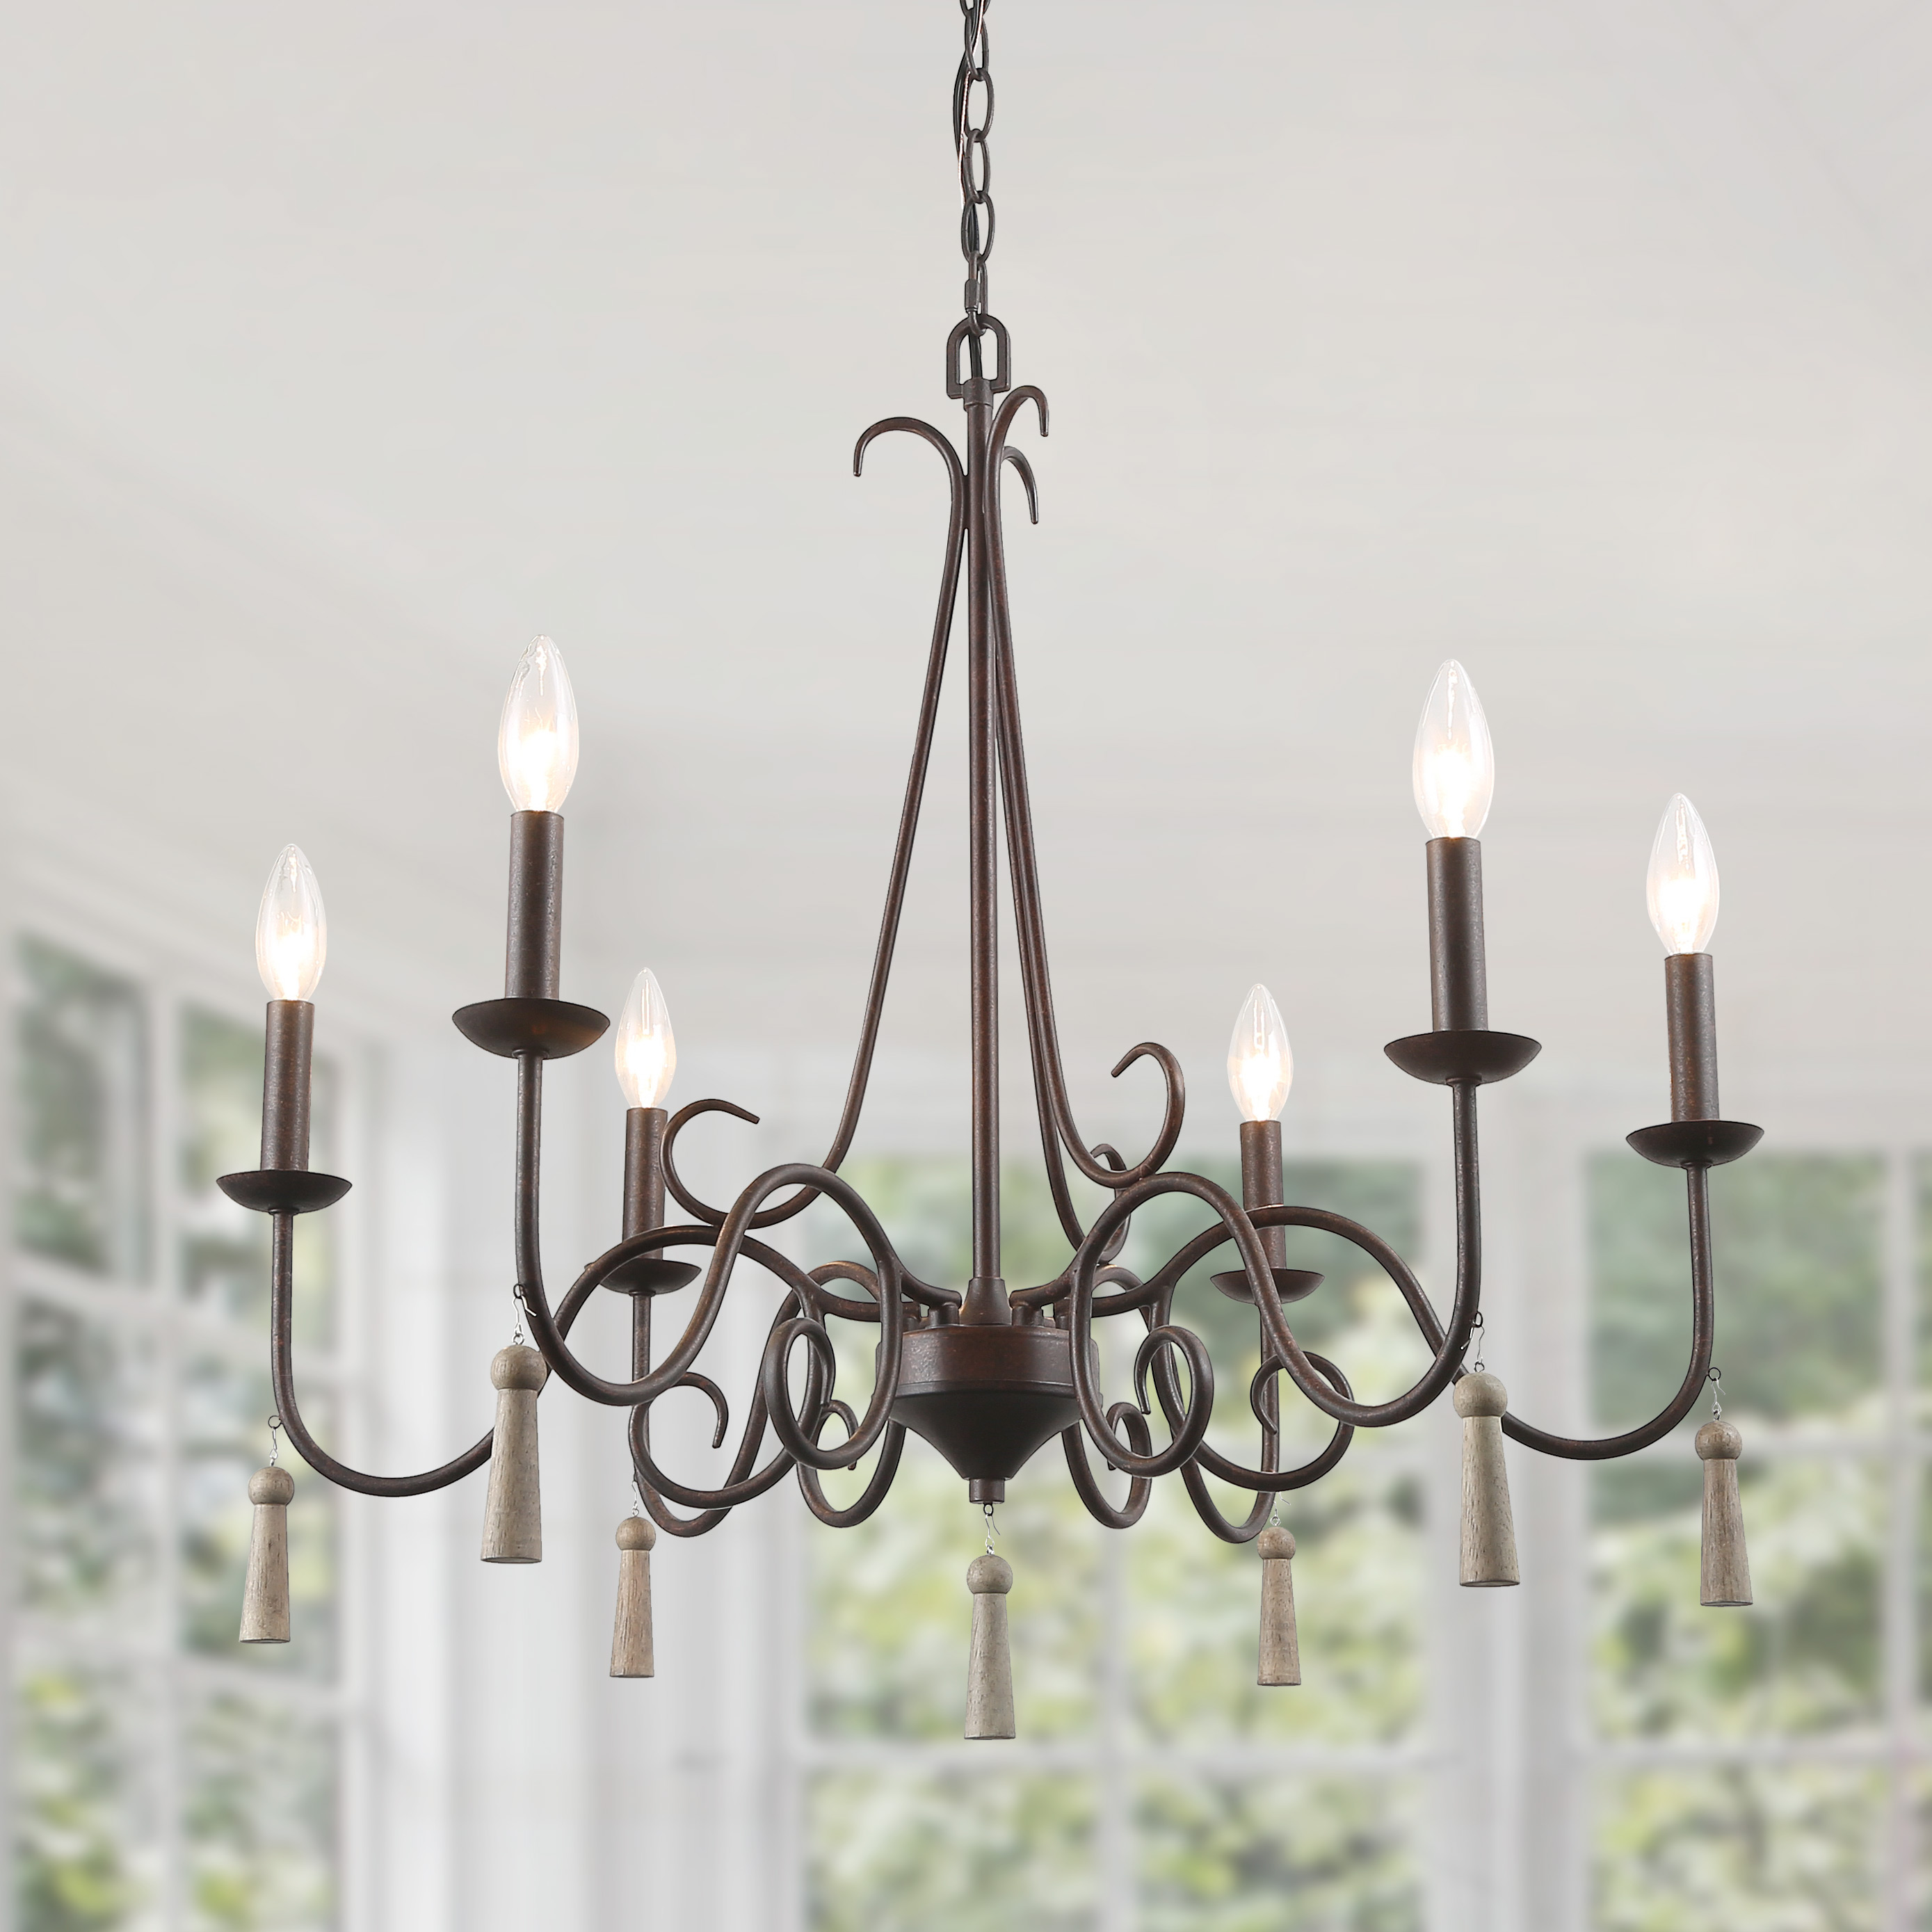 Lnc Rustic French Country Chandelier 6